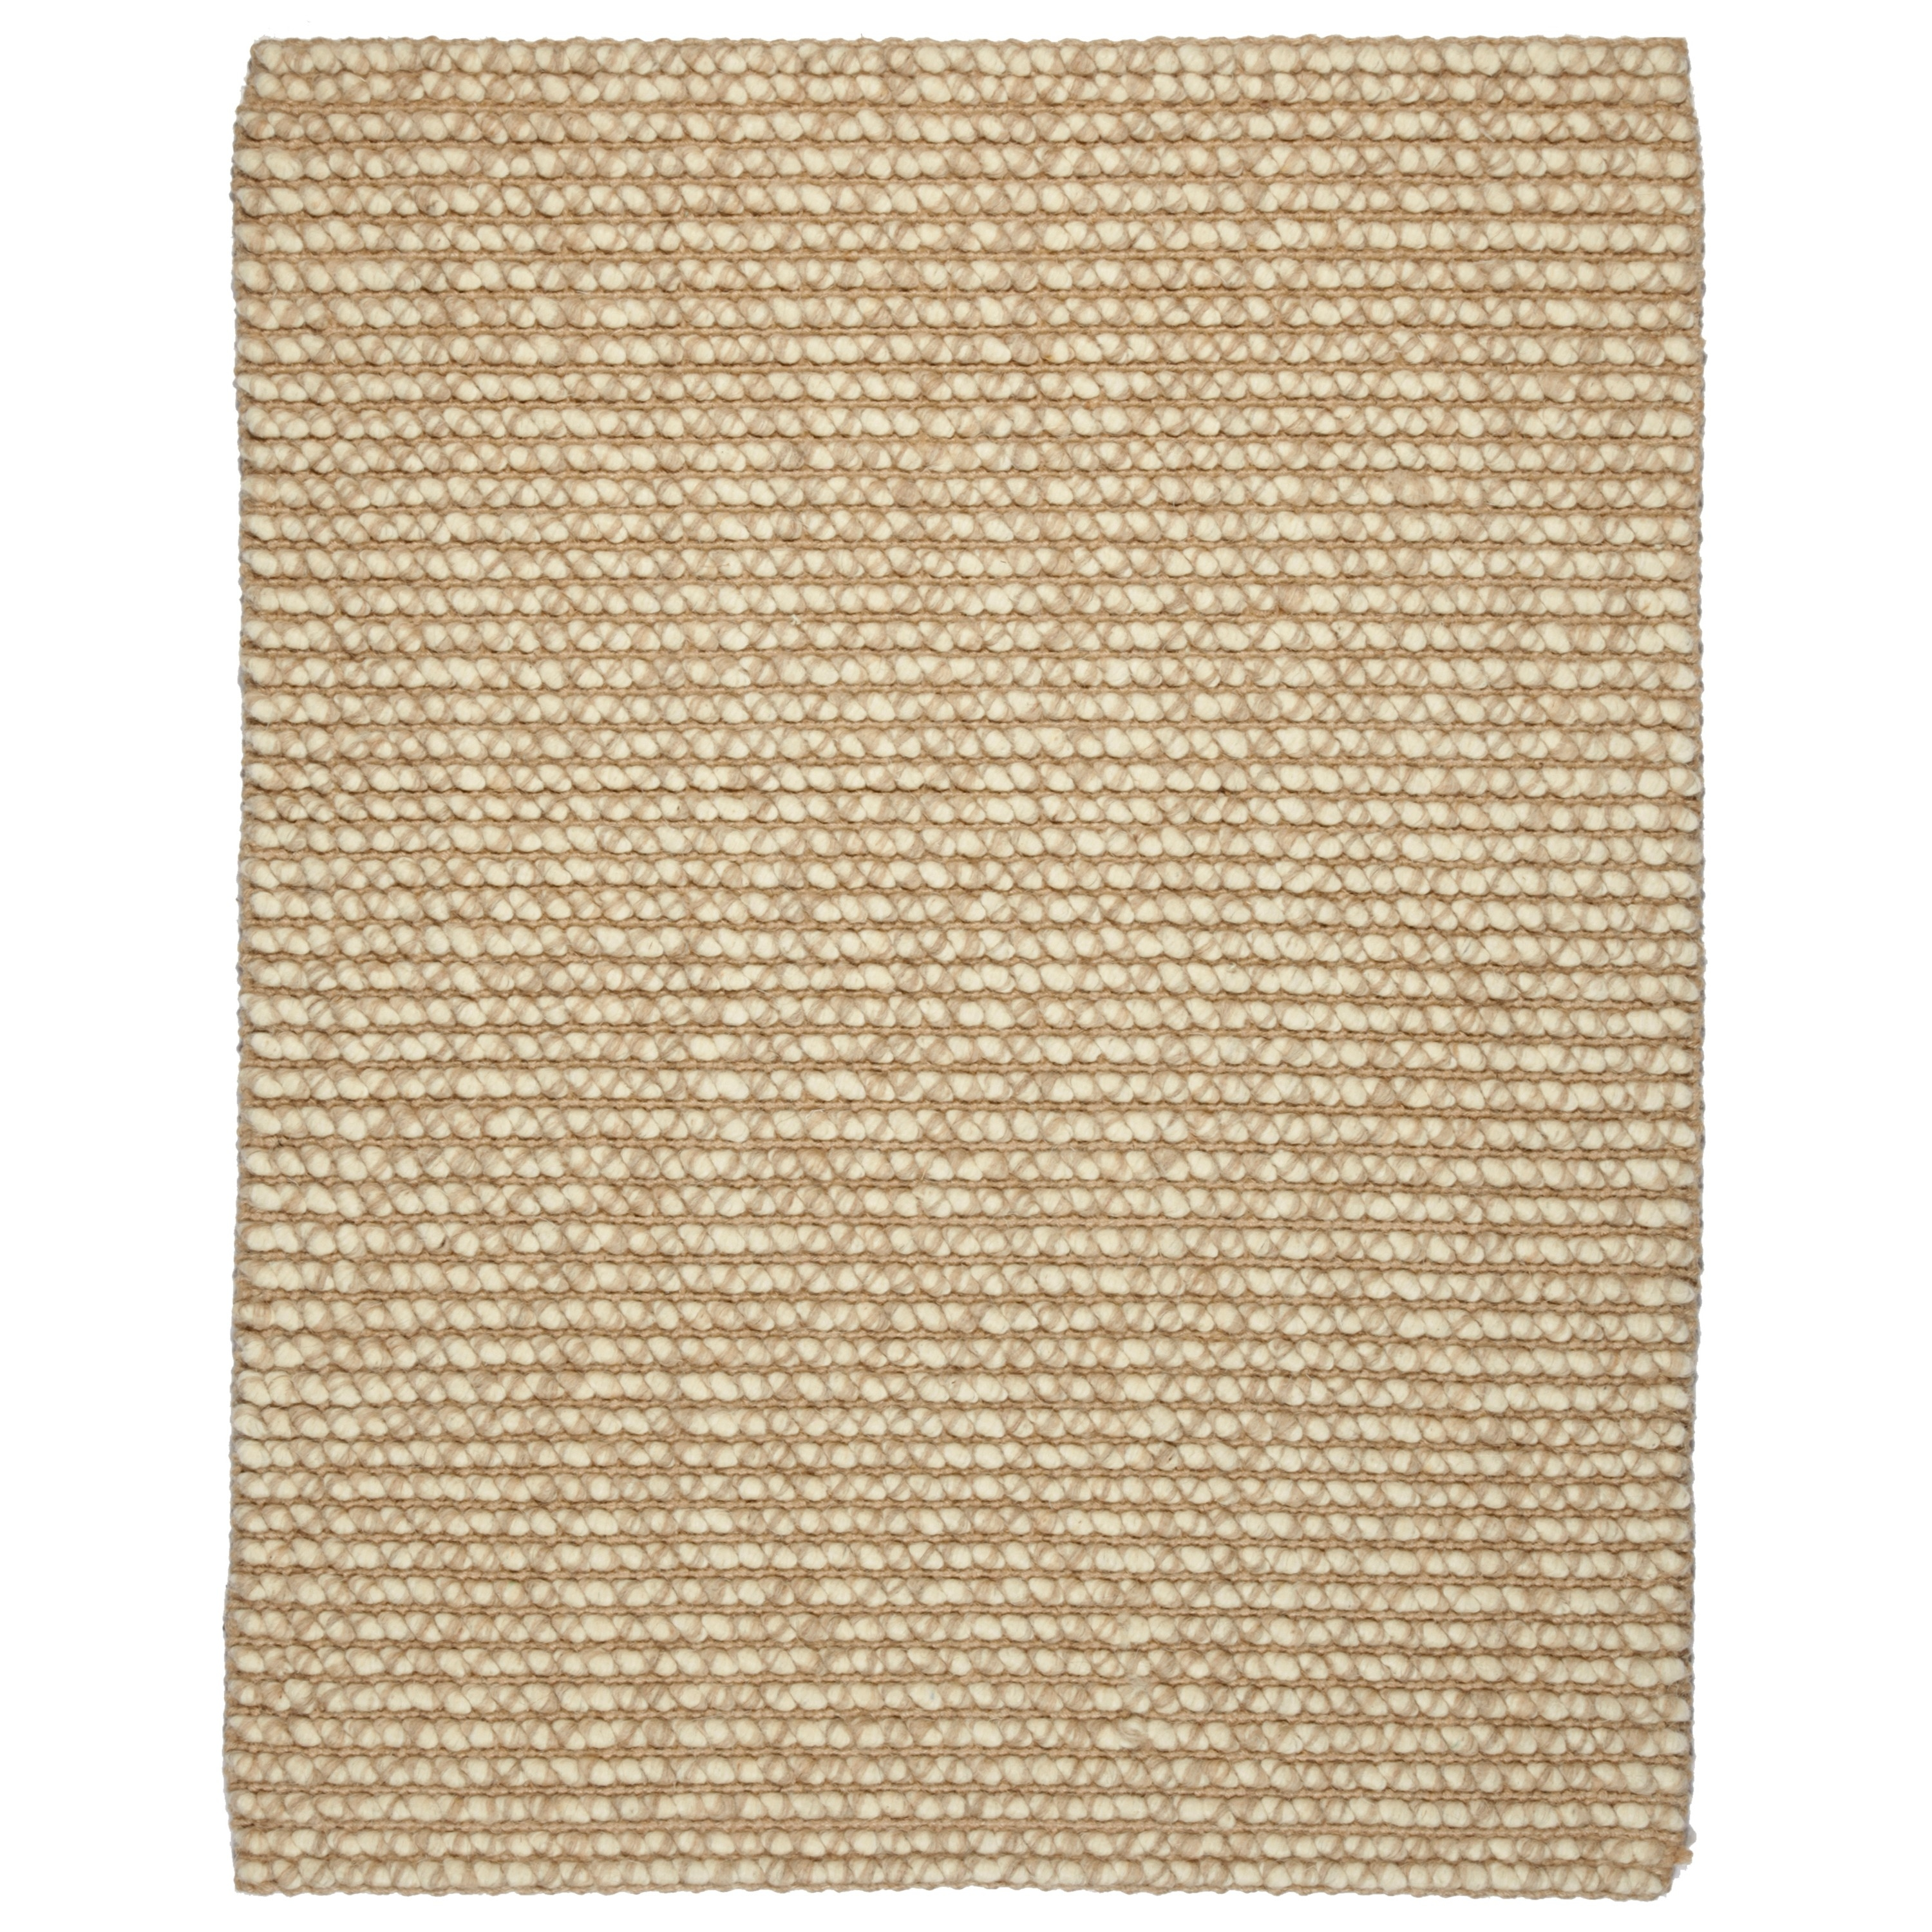 10 X 14 Area Rugs 15 Photo Of Wool Area Rugs 1014